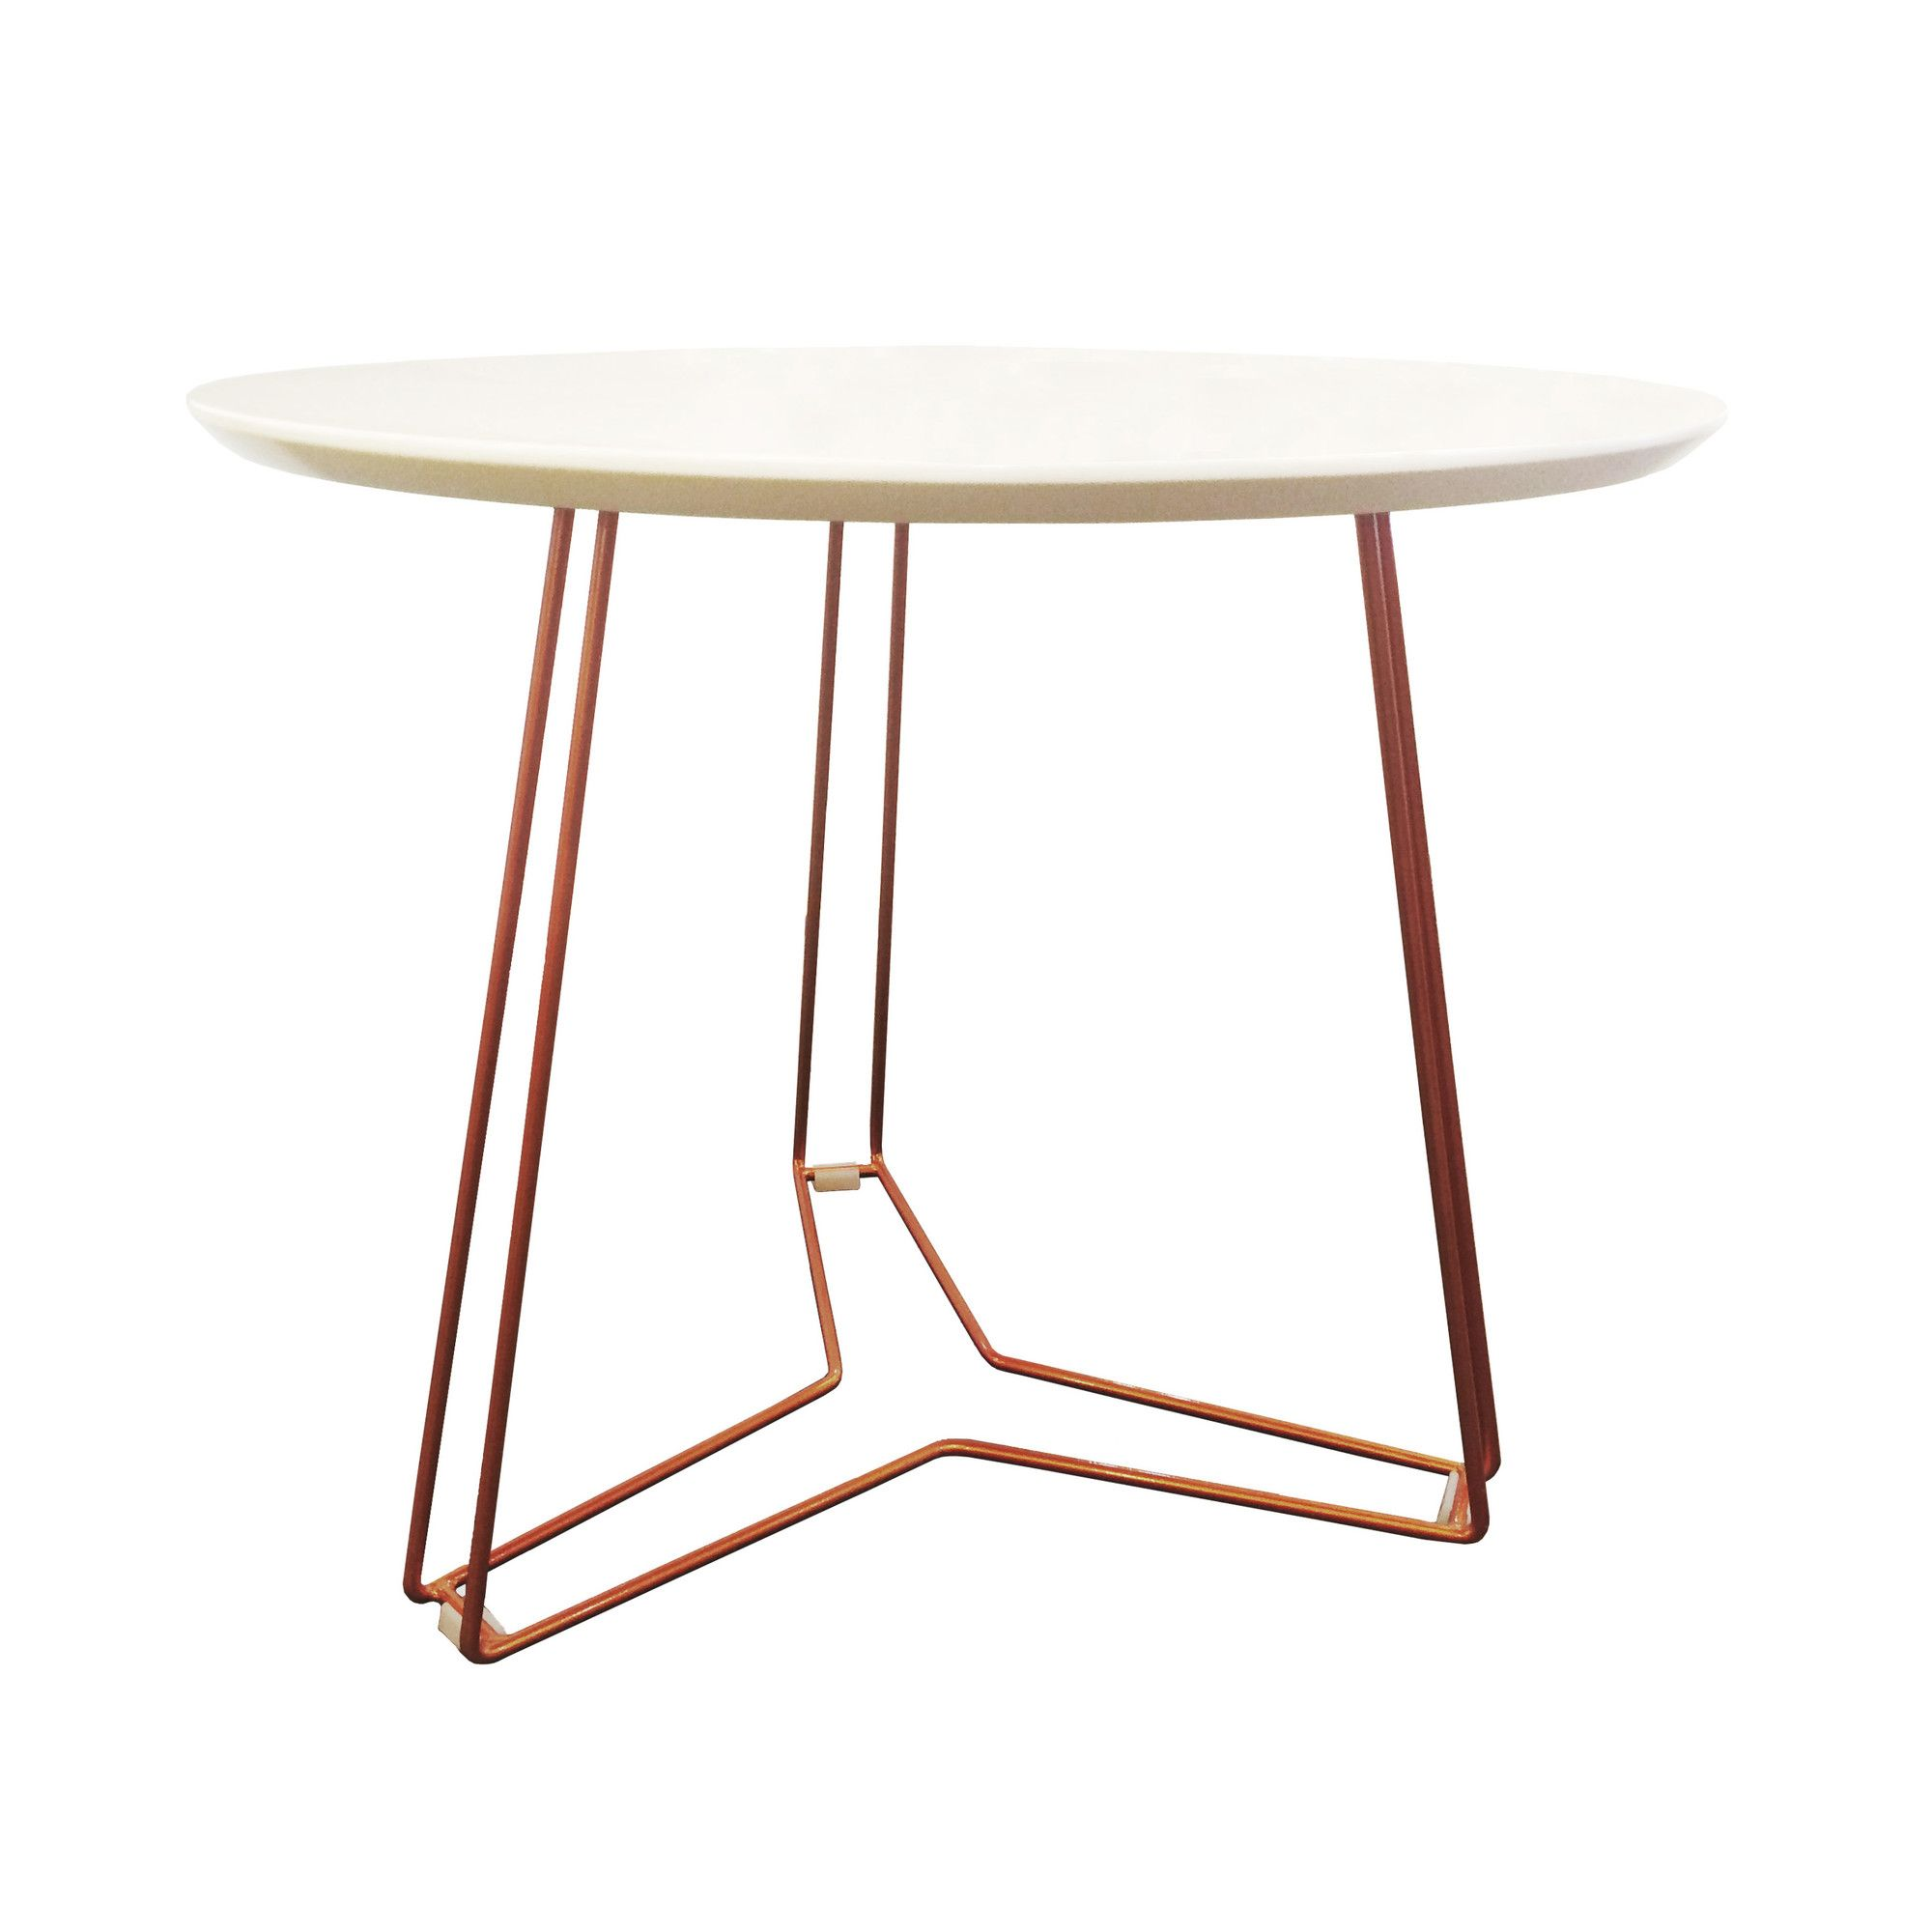 Splice Round Side Table Side table, Round side table, Table